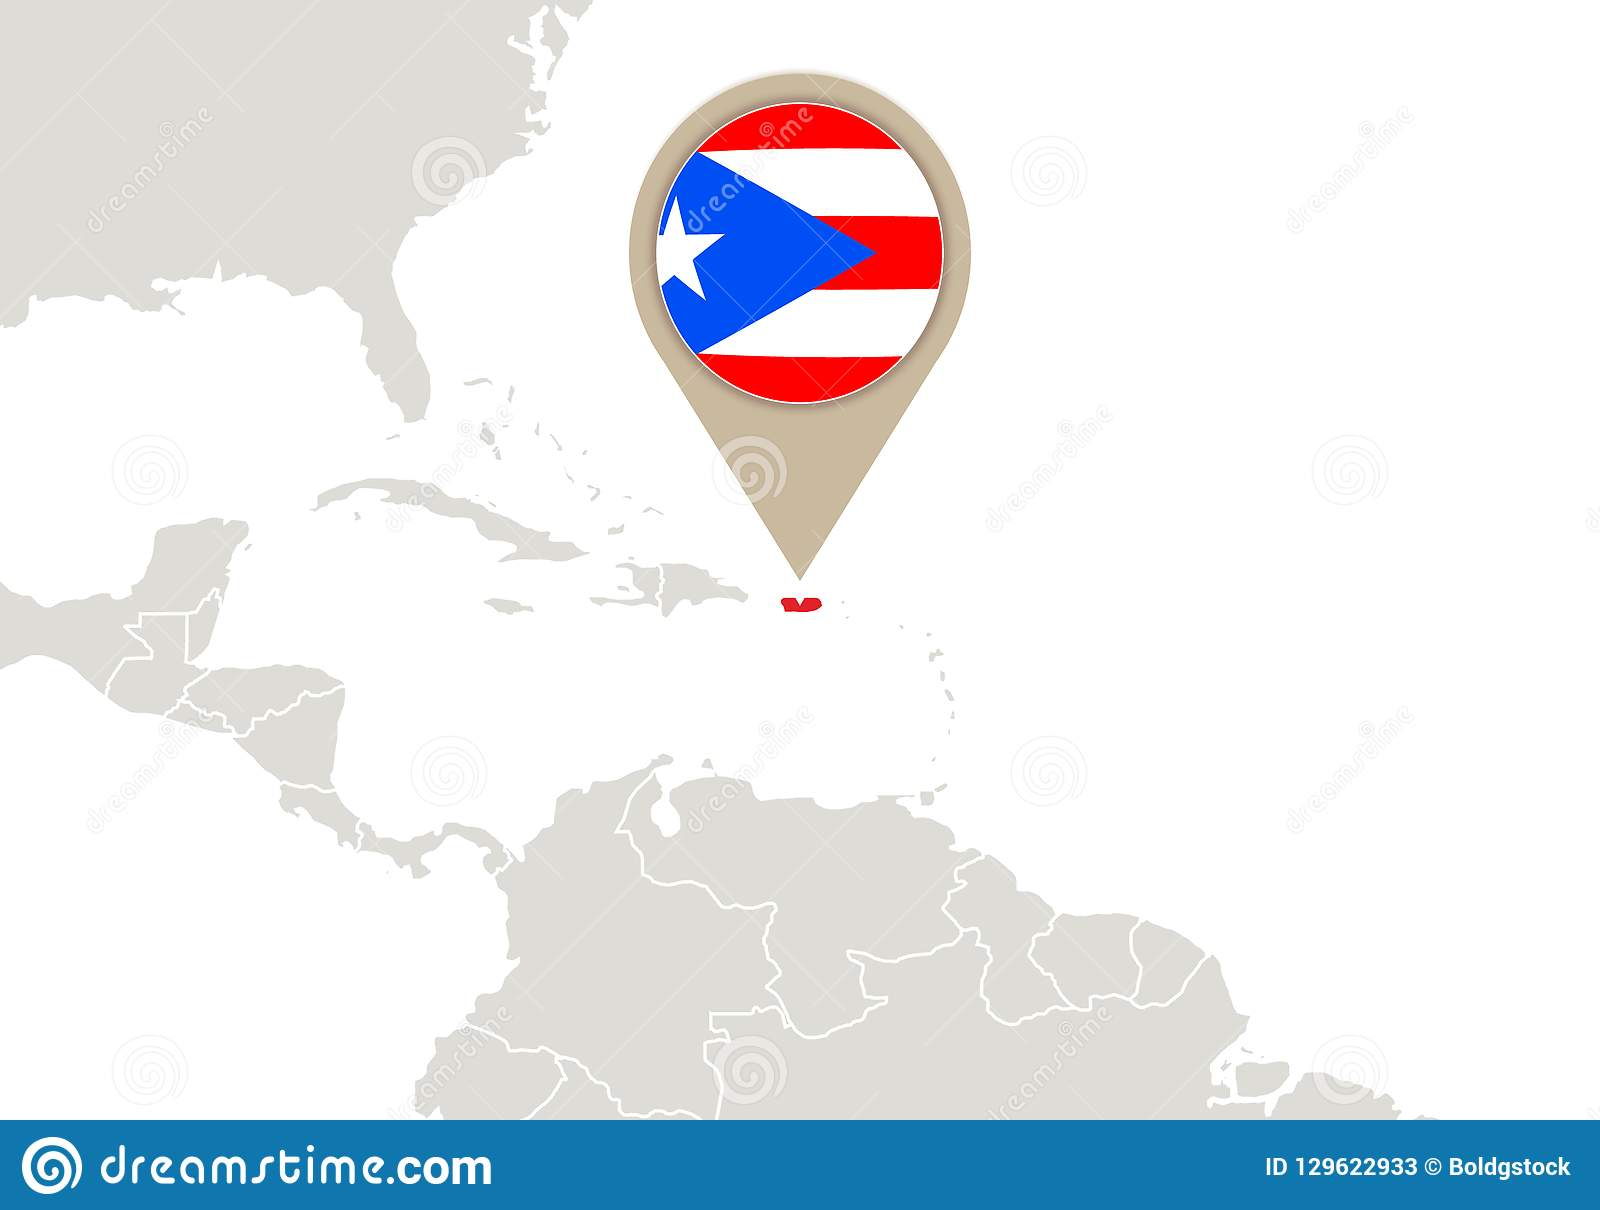 Puerto Rico On World Map Stock Vector Illustration Of Rico 129622933